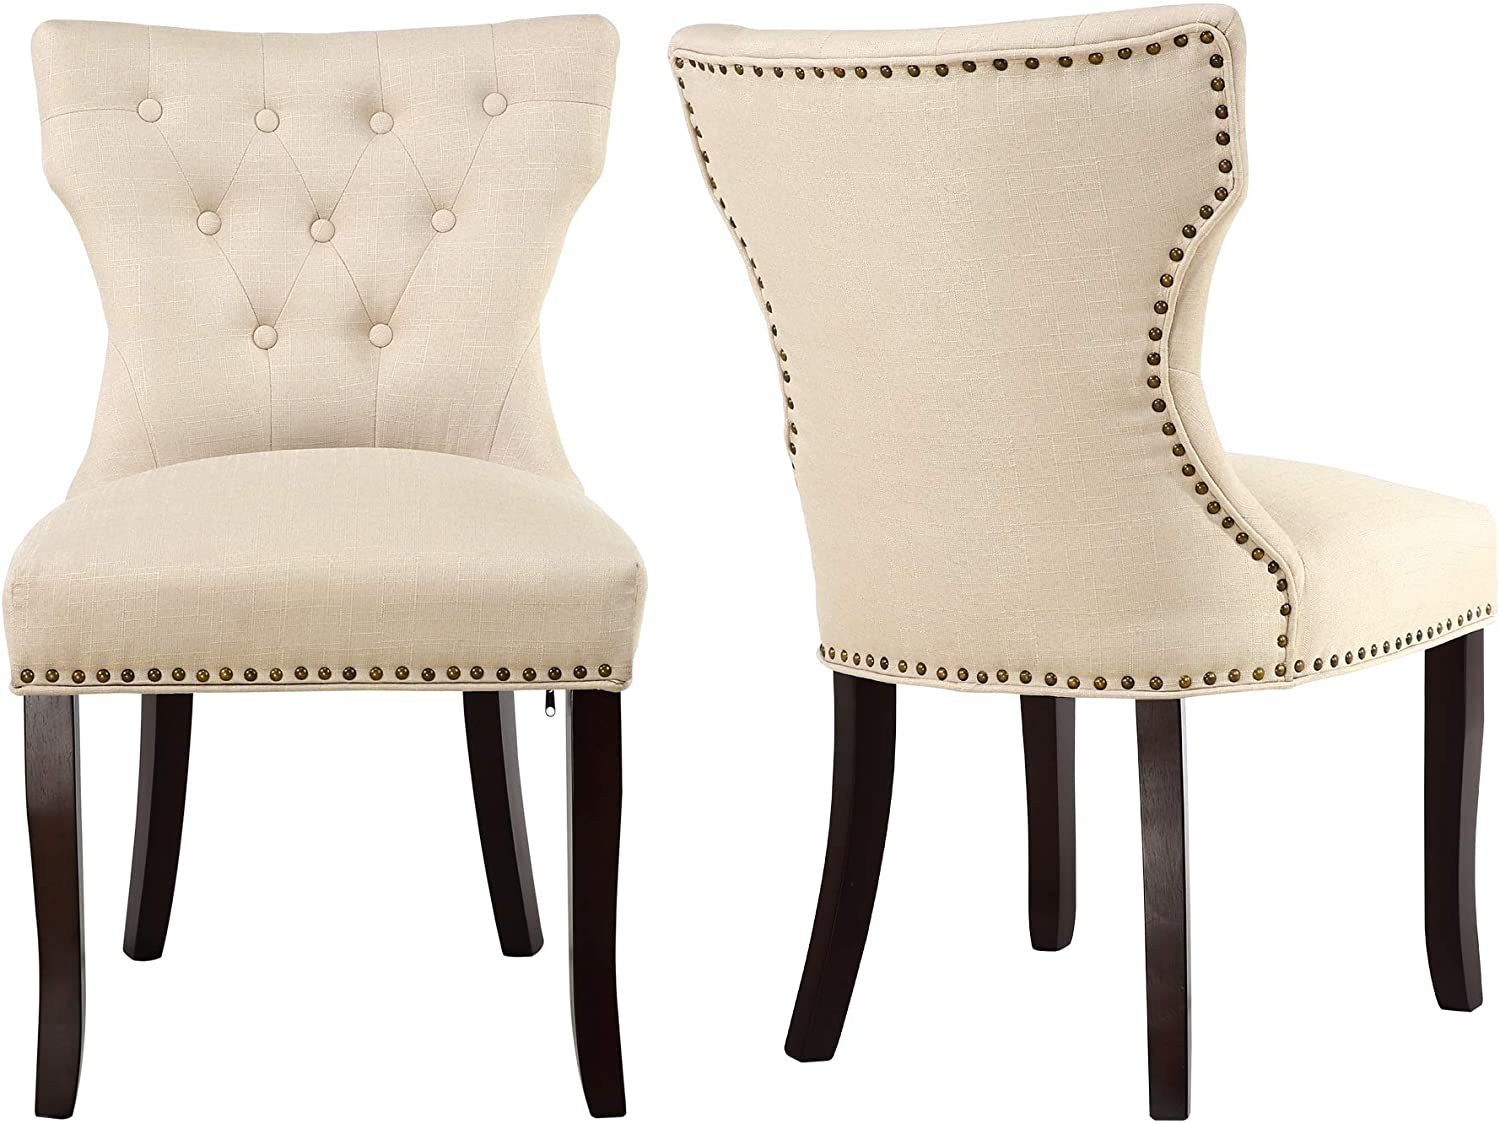 Best for Detailing: LSSBOUGHT Fabric Dining Chair.